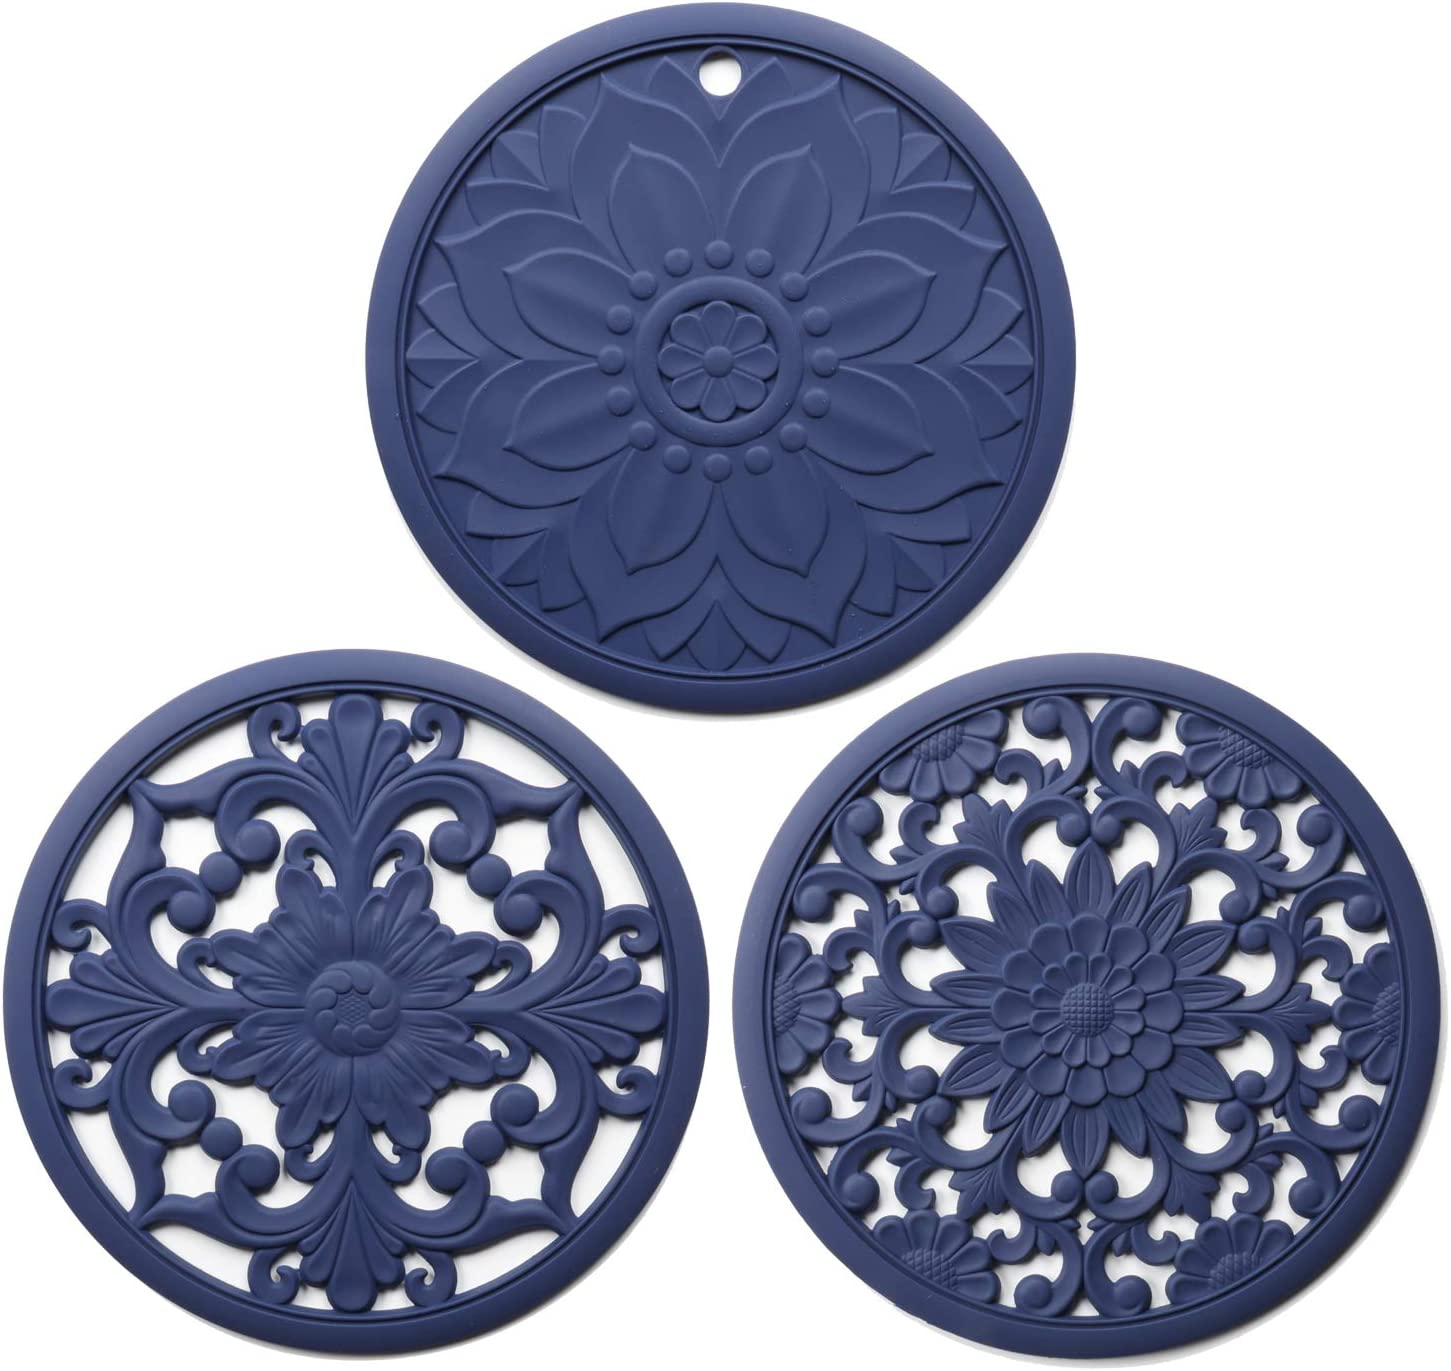 Silicone Trivet Mat 3 Set Intricately Carved Trivet Mat, Silicone Trivets for Hot Pods and Pans, Hot Dishes - No Slip & Heat Resistant Modern Kitchen Hot Pads for Countertop, Table (Blue)